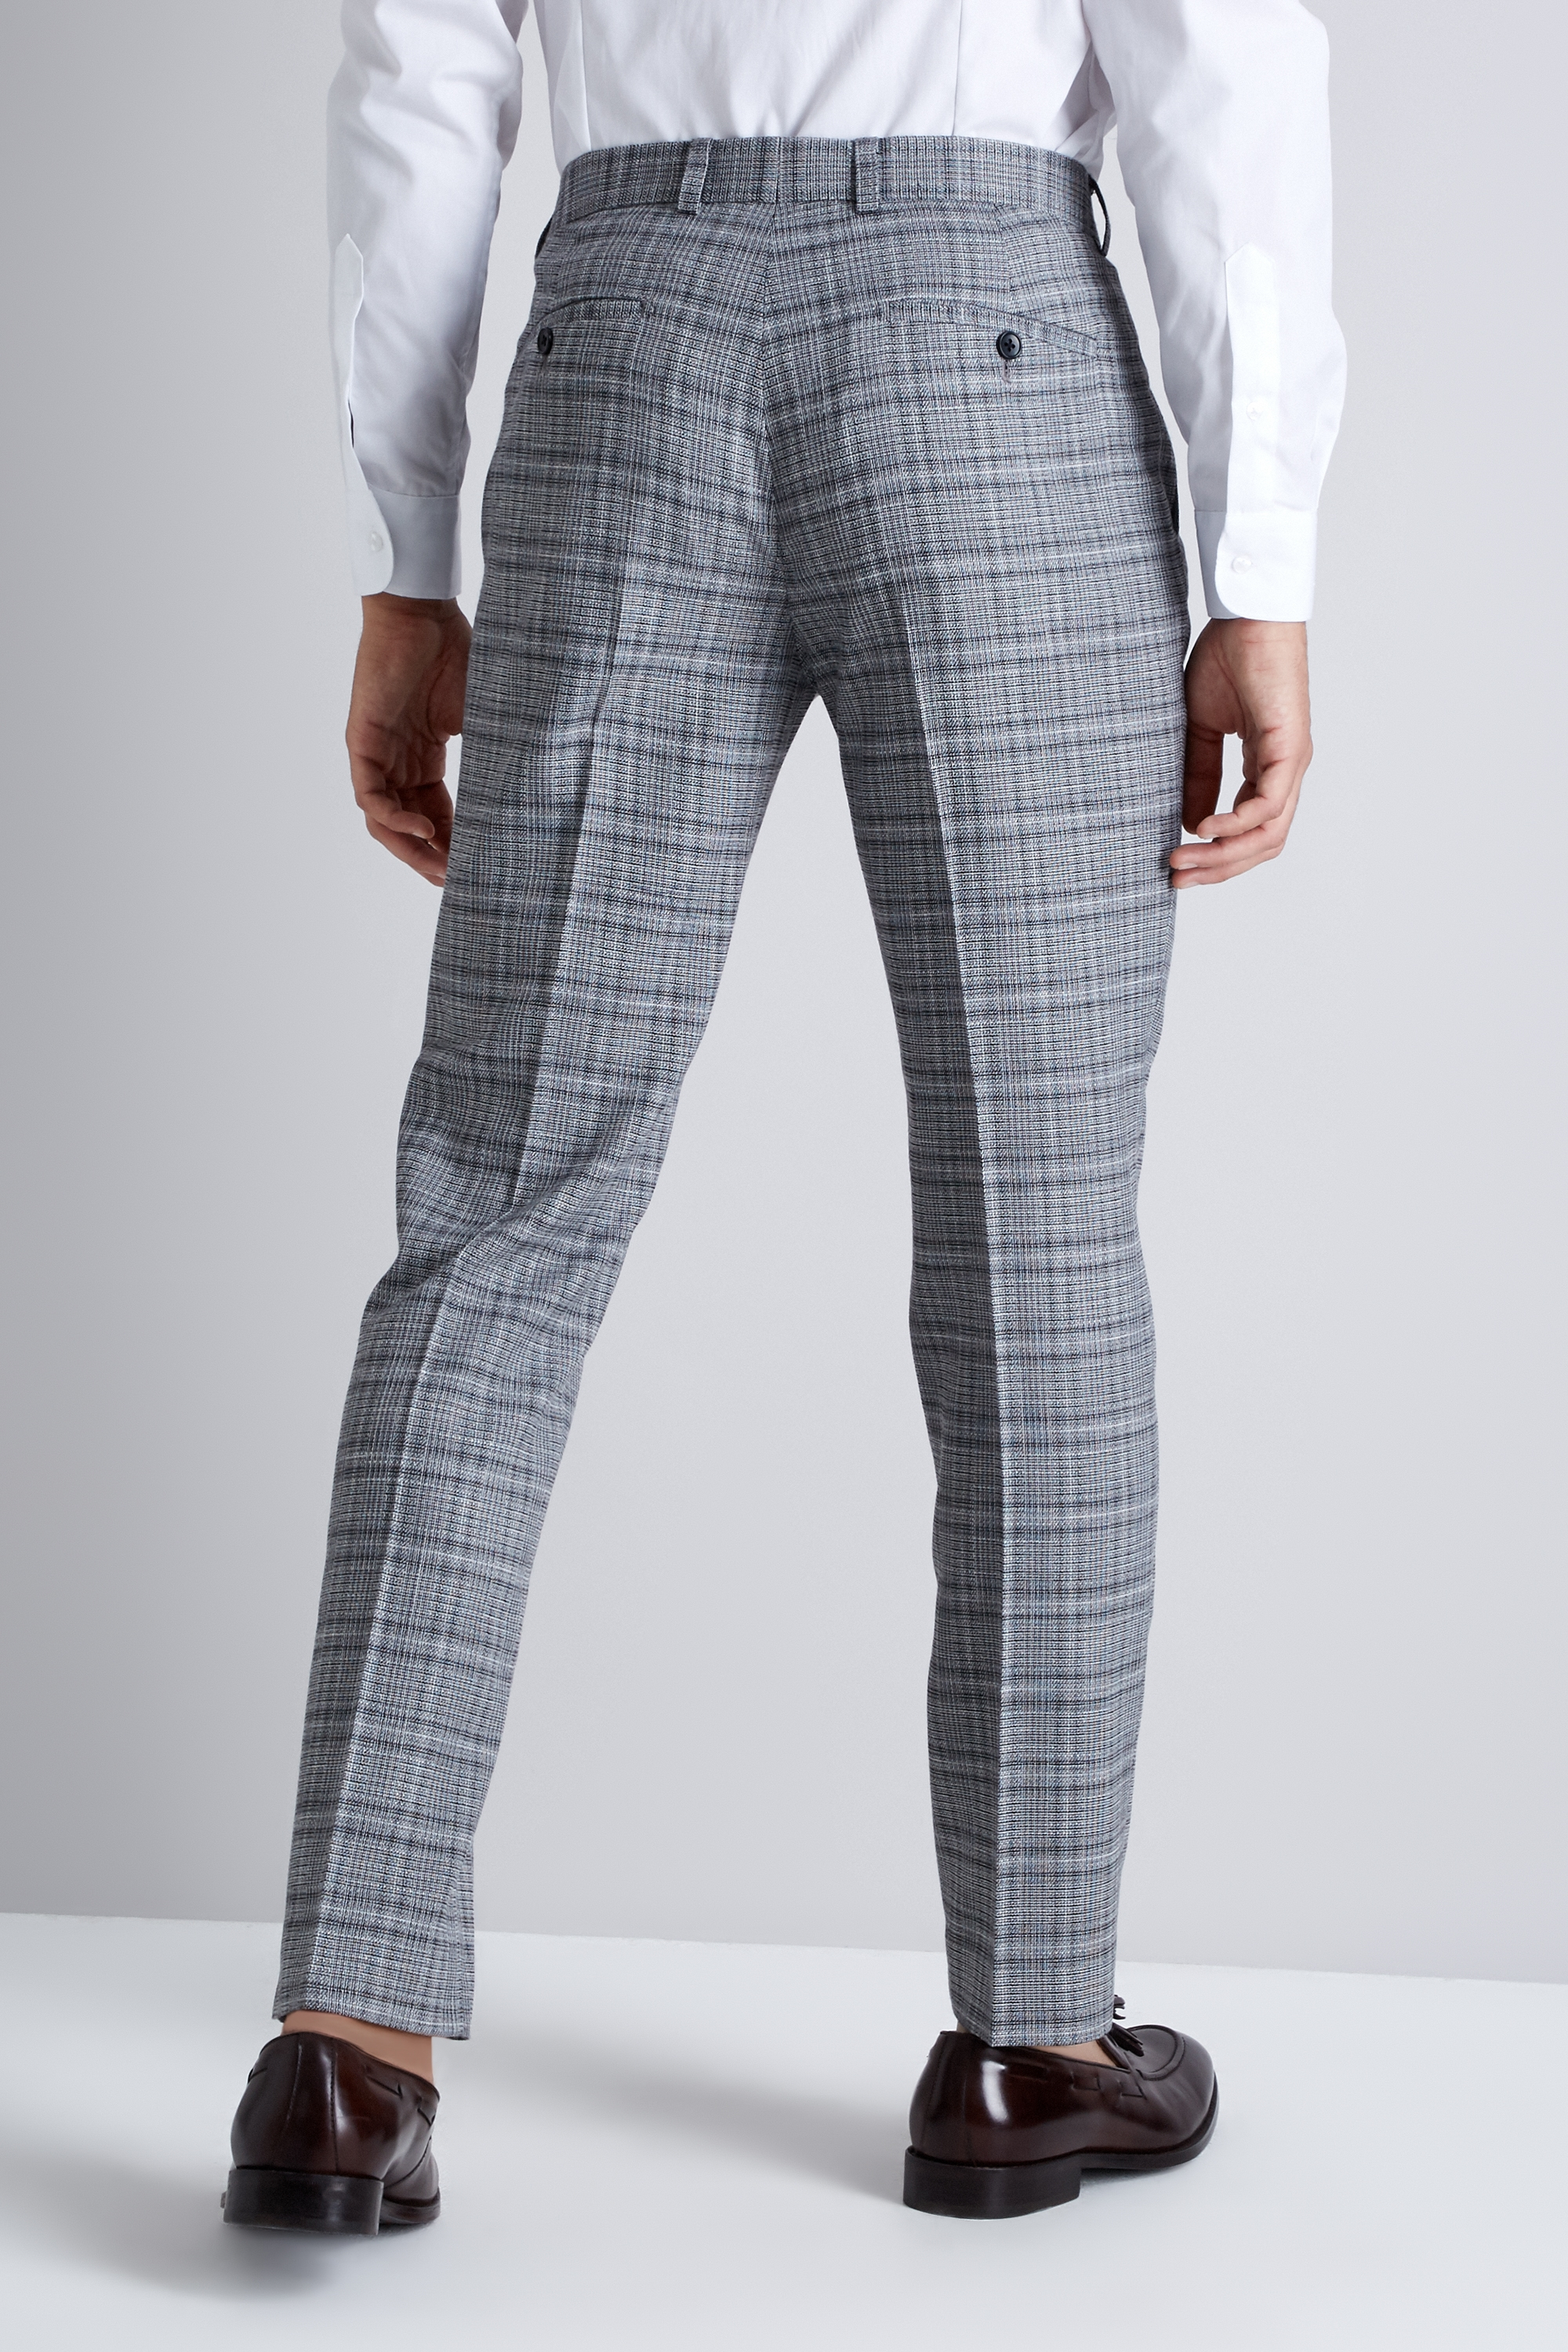 c2e52e833a6f Moss London Mens Suit Trousers Skinny Fit Black and White Twist Check Pants